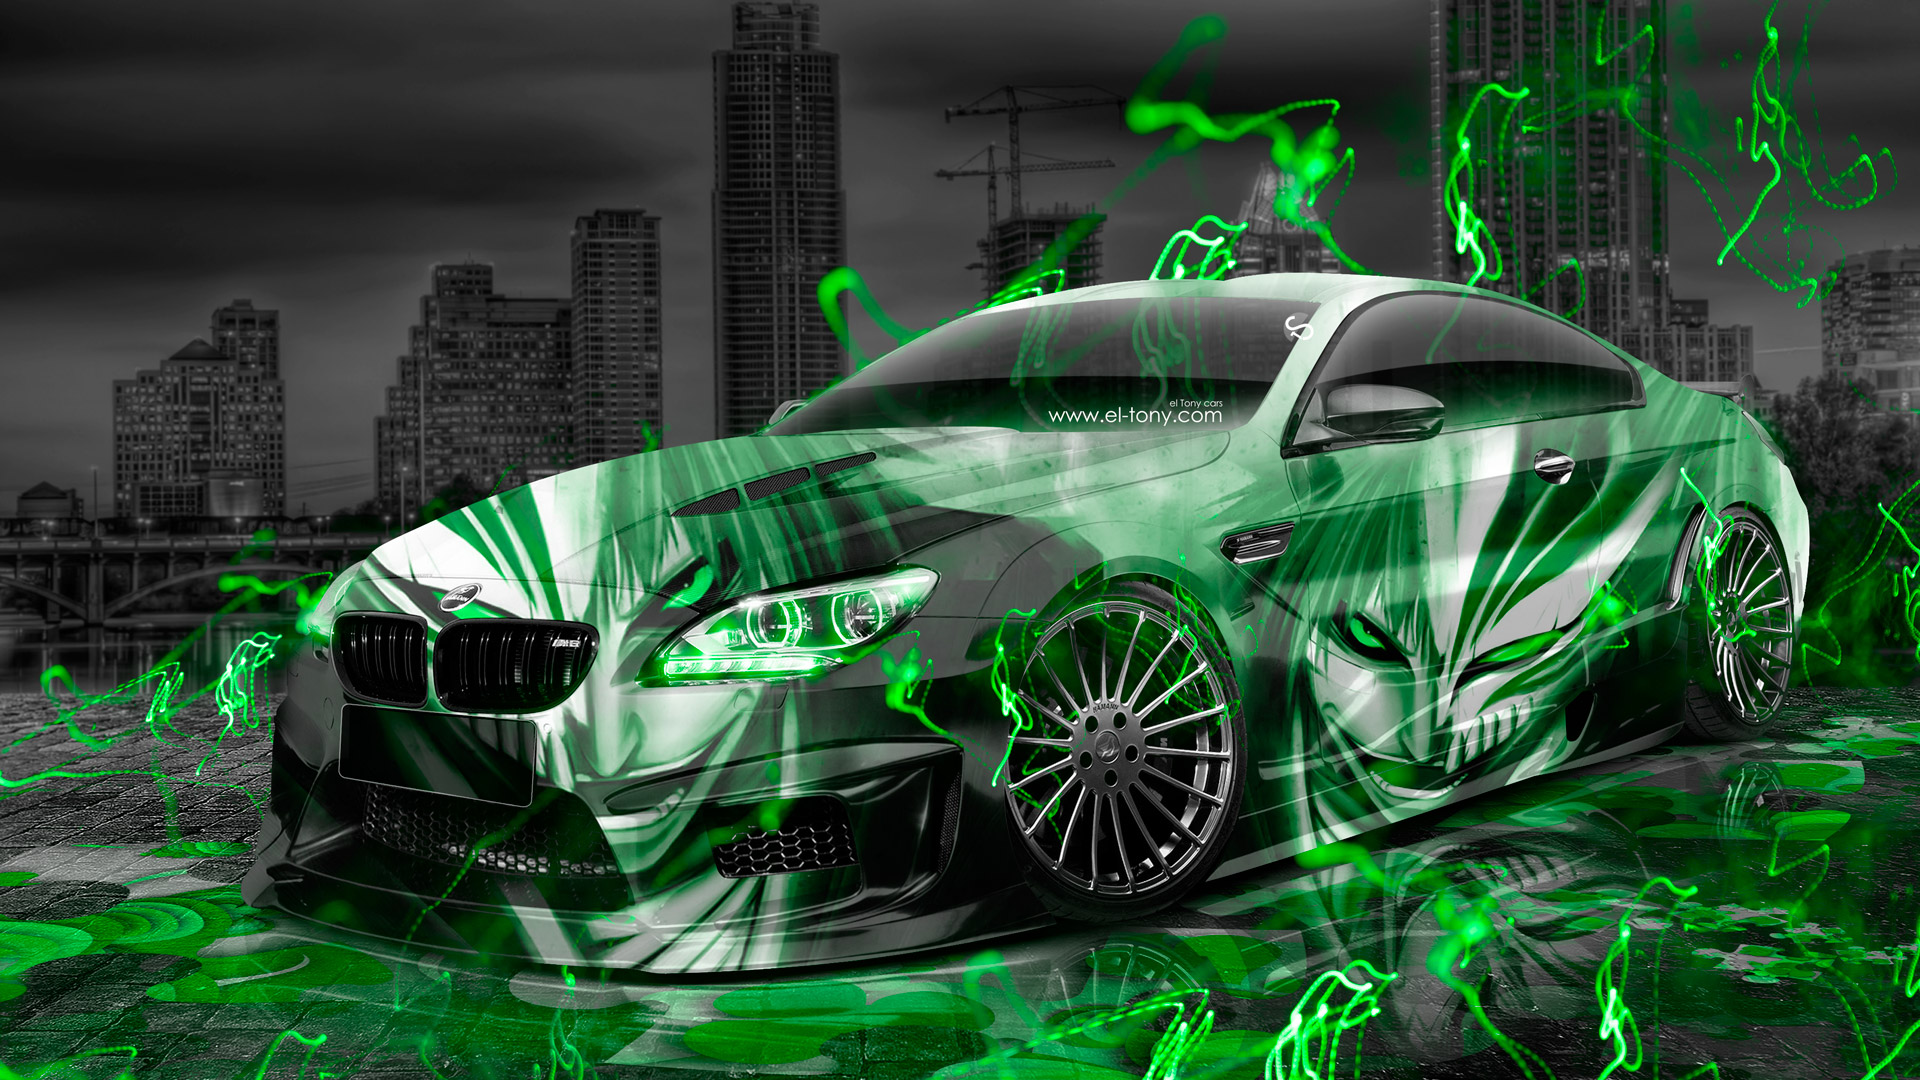 BMW-M6-Hamann-Tuning-3D-Anime-Bleach-Aerography-City-Car-2015-Green-Neon-Effects-HD-Wallpapers-design-by-Tony-Kokhan-www.el-tony.com-image